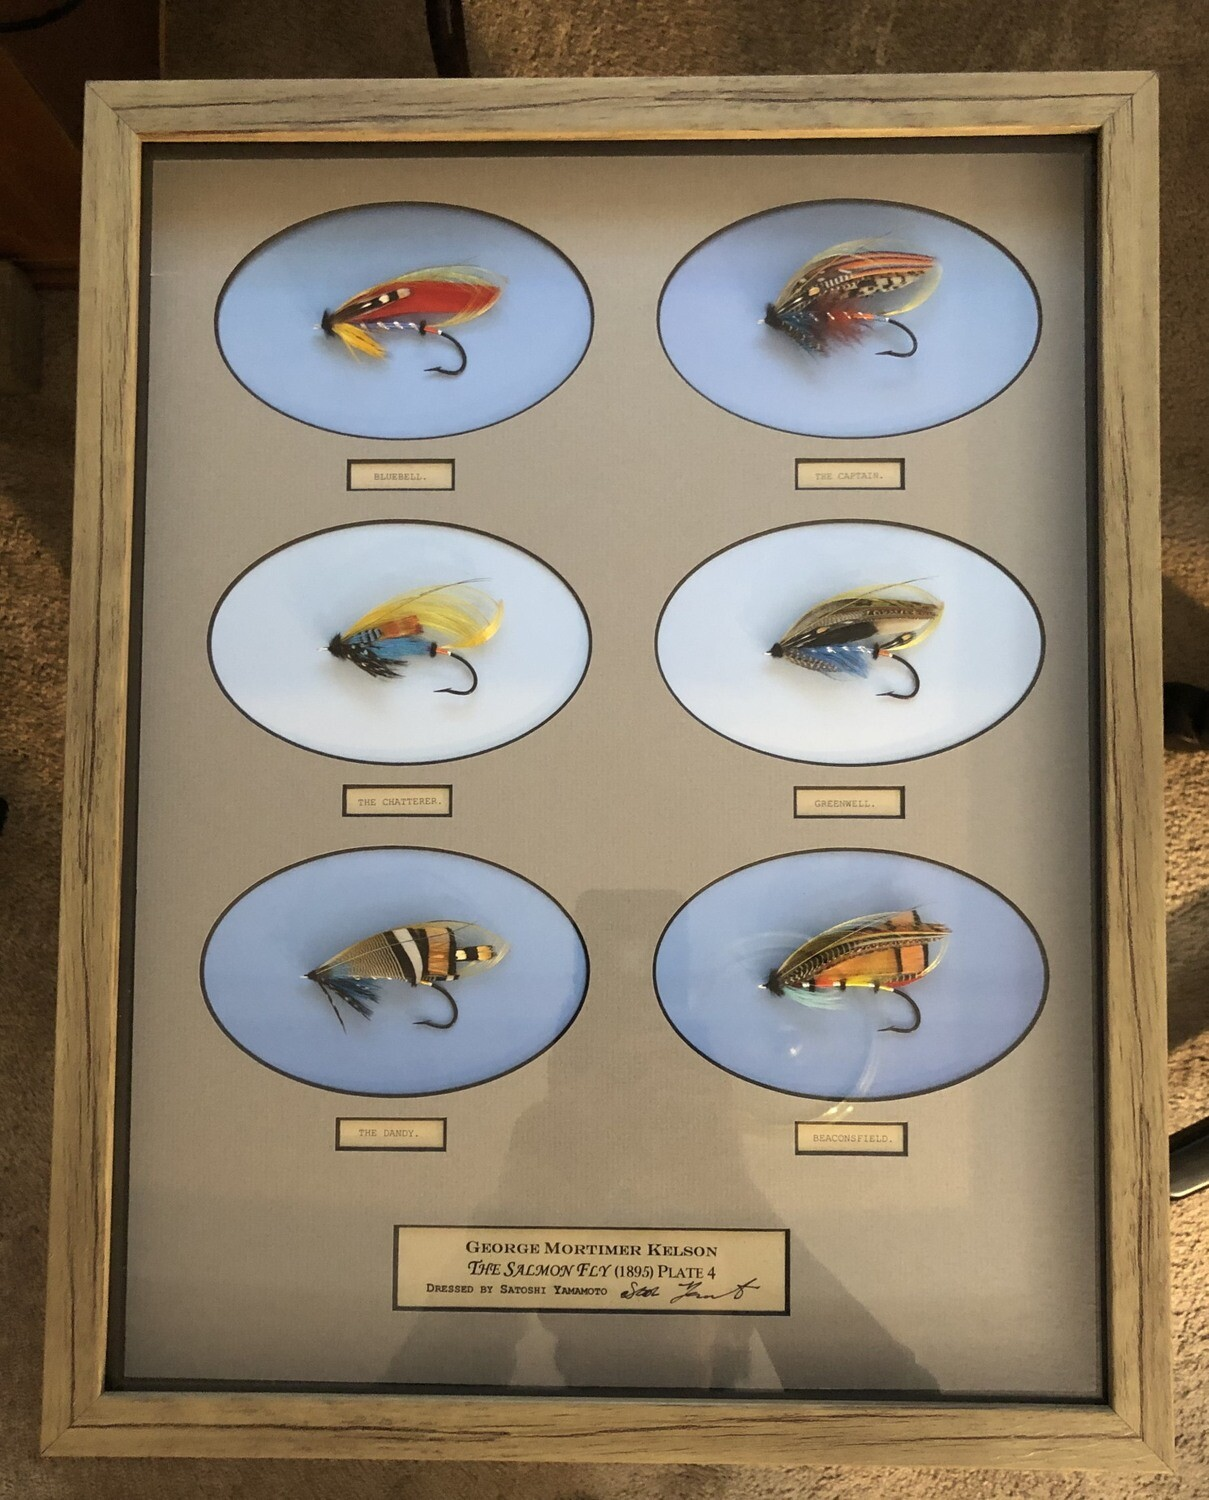 George Kelson's The Salmon Fly Plate 4 or Plate 5 or Plate 6